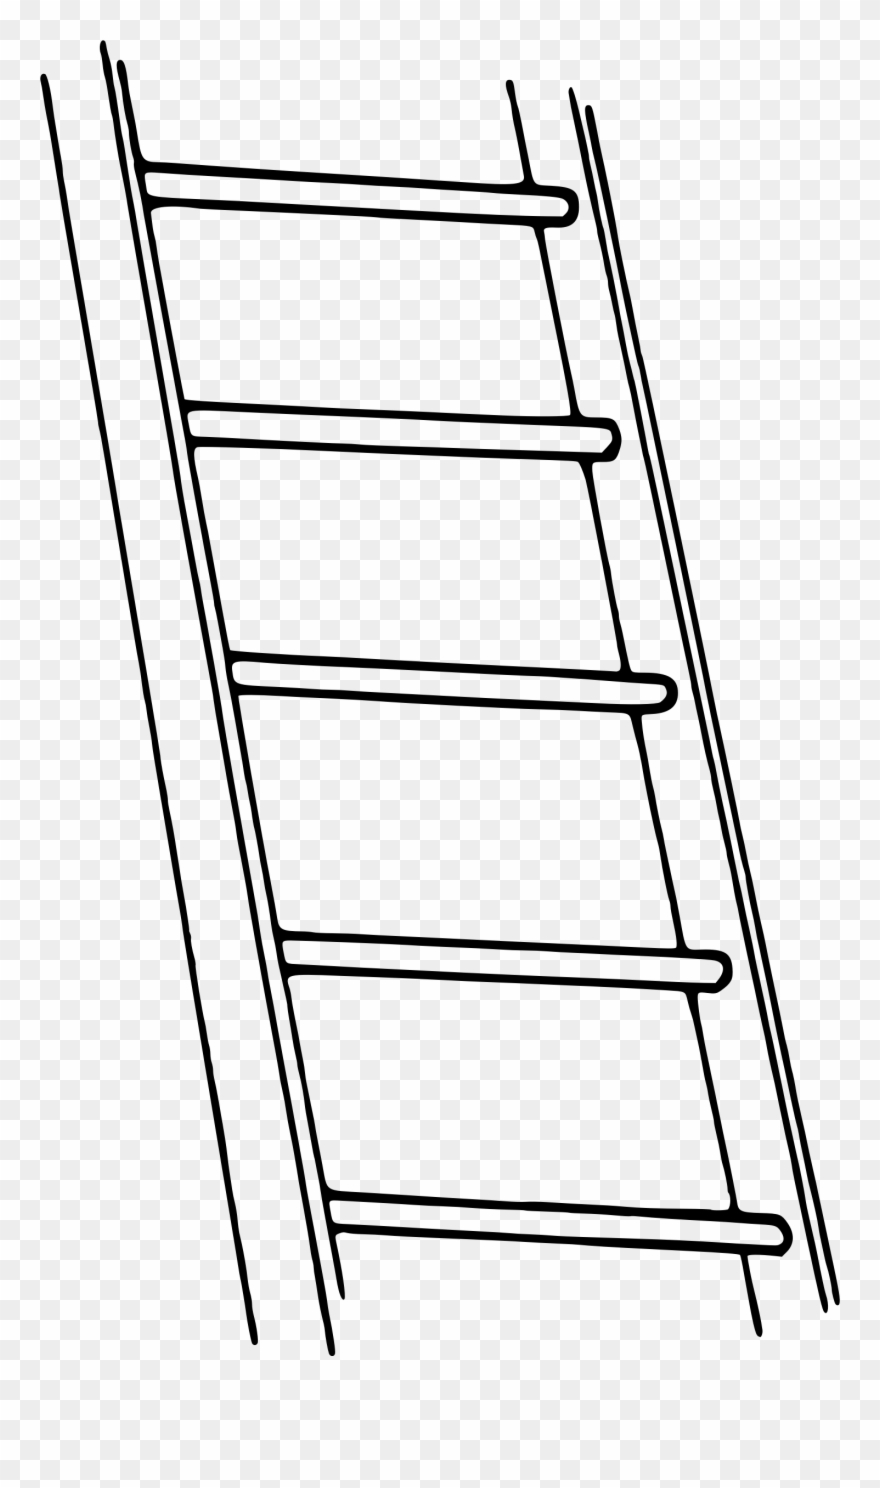 Ladder Clipart Black And White.